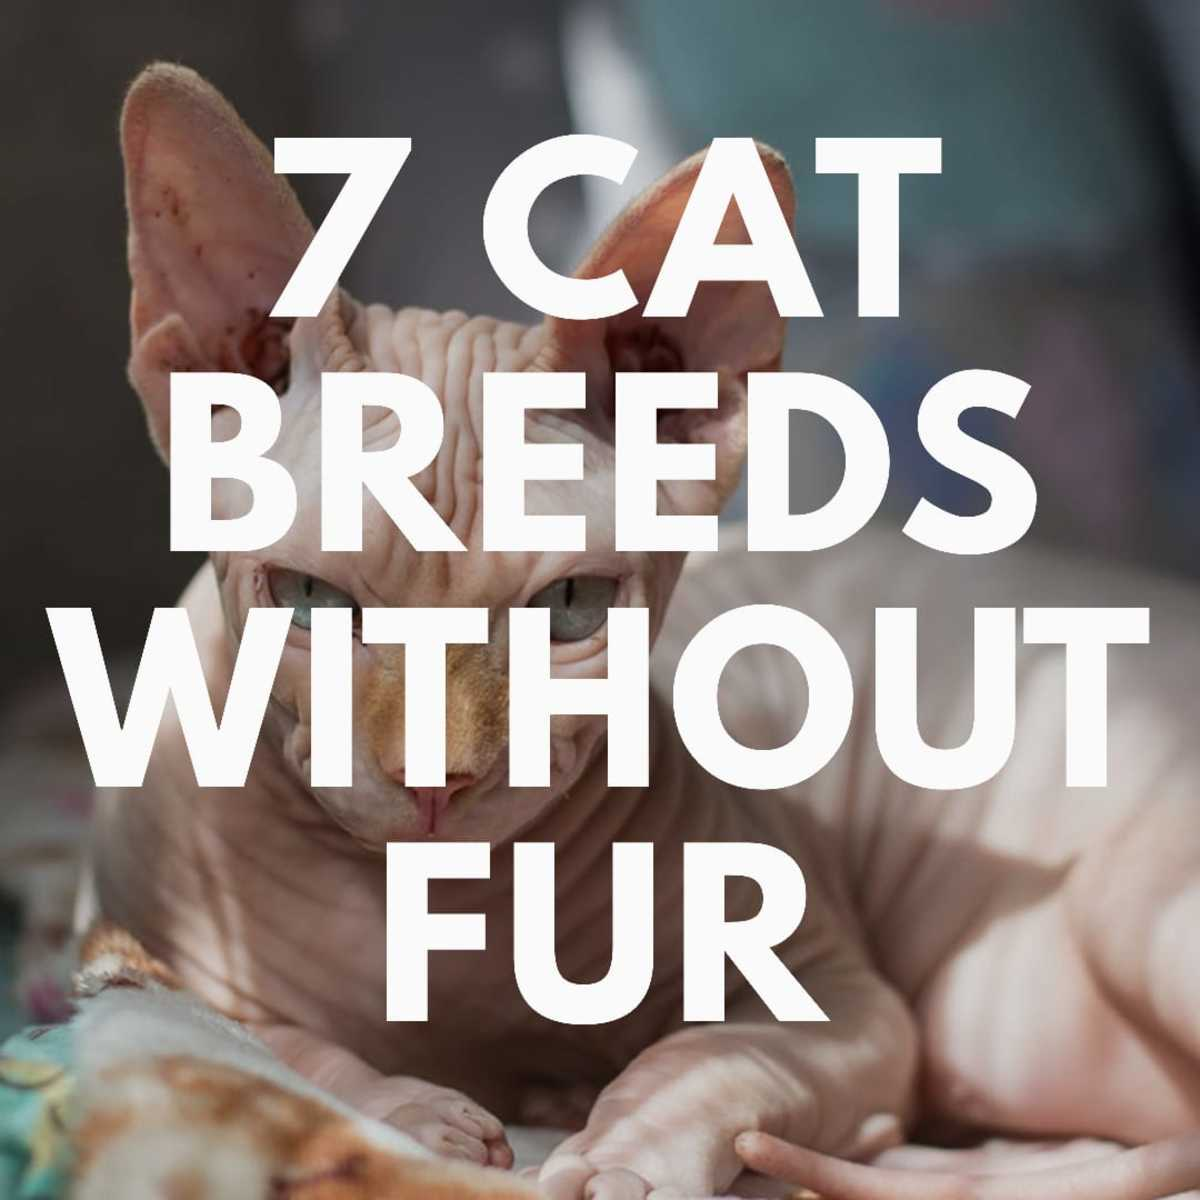 7 Hairless Cat Breeds - Cats Without Fur